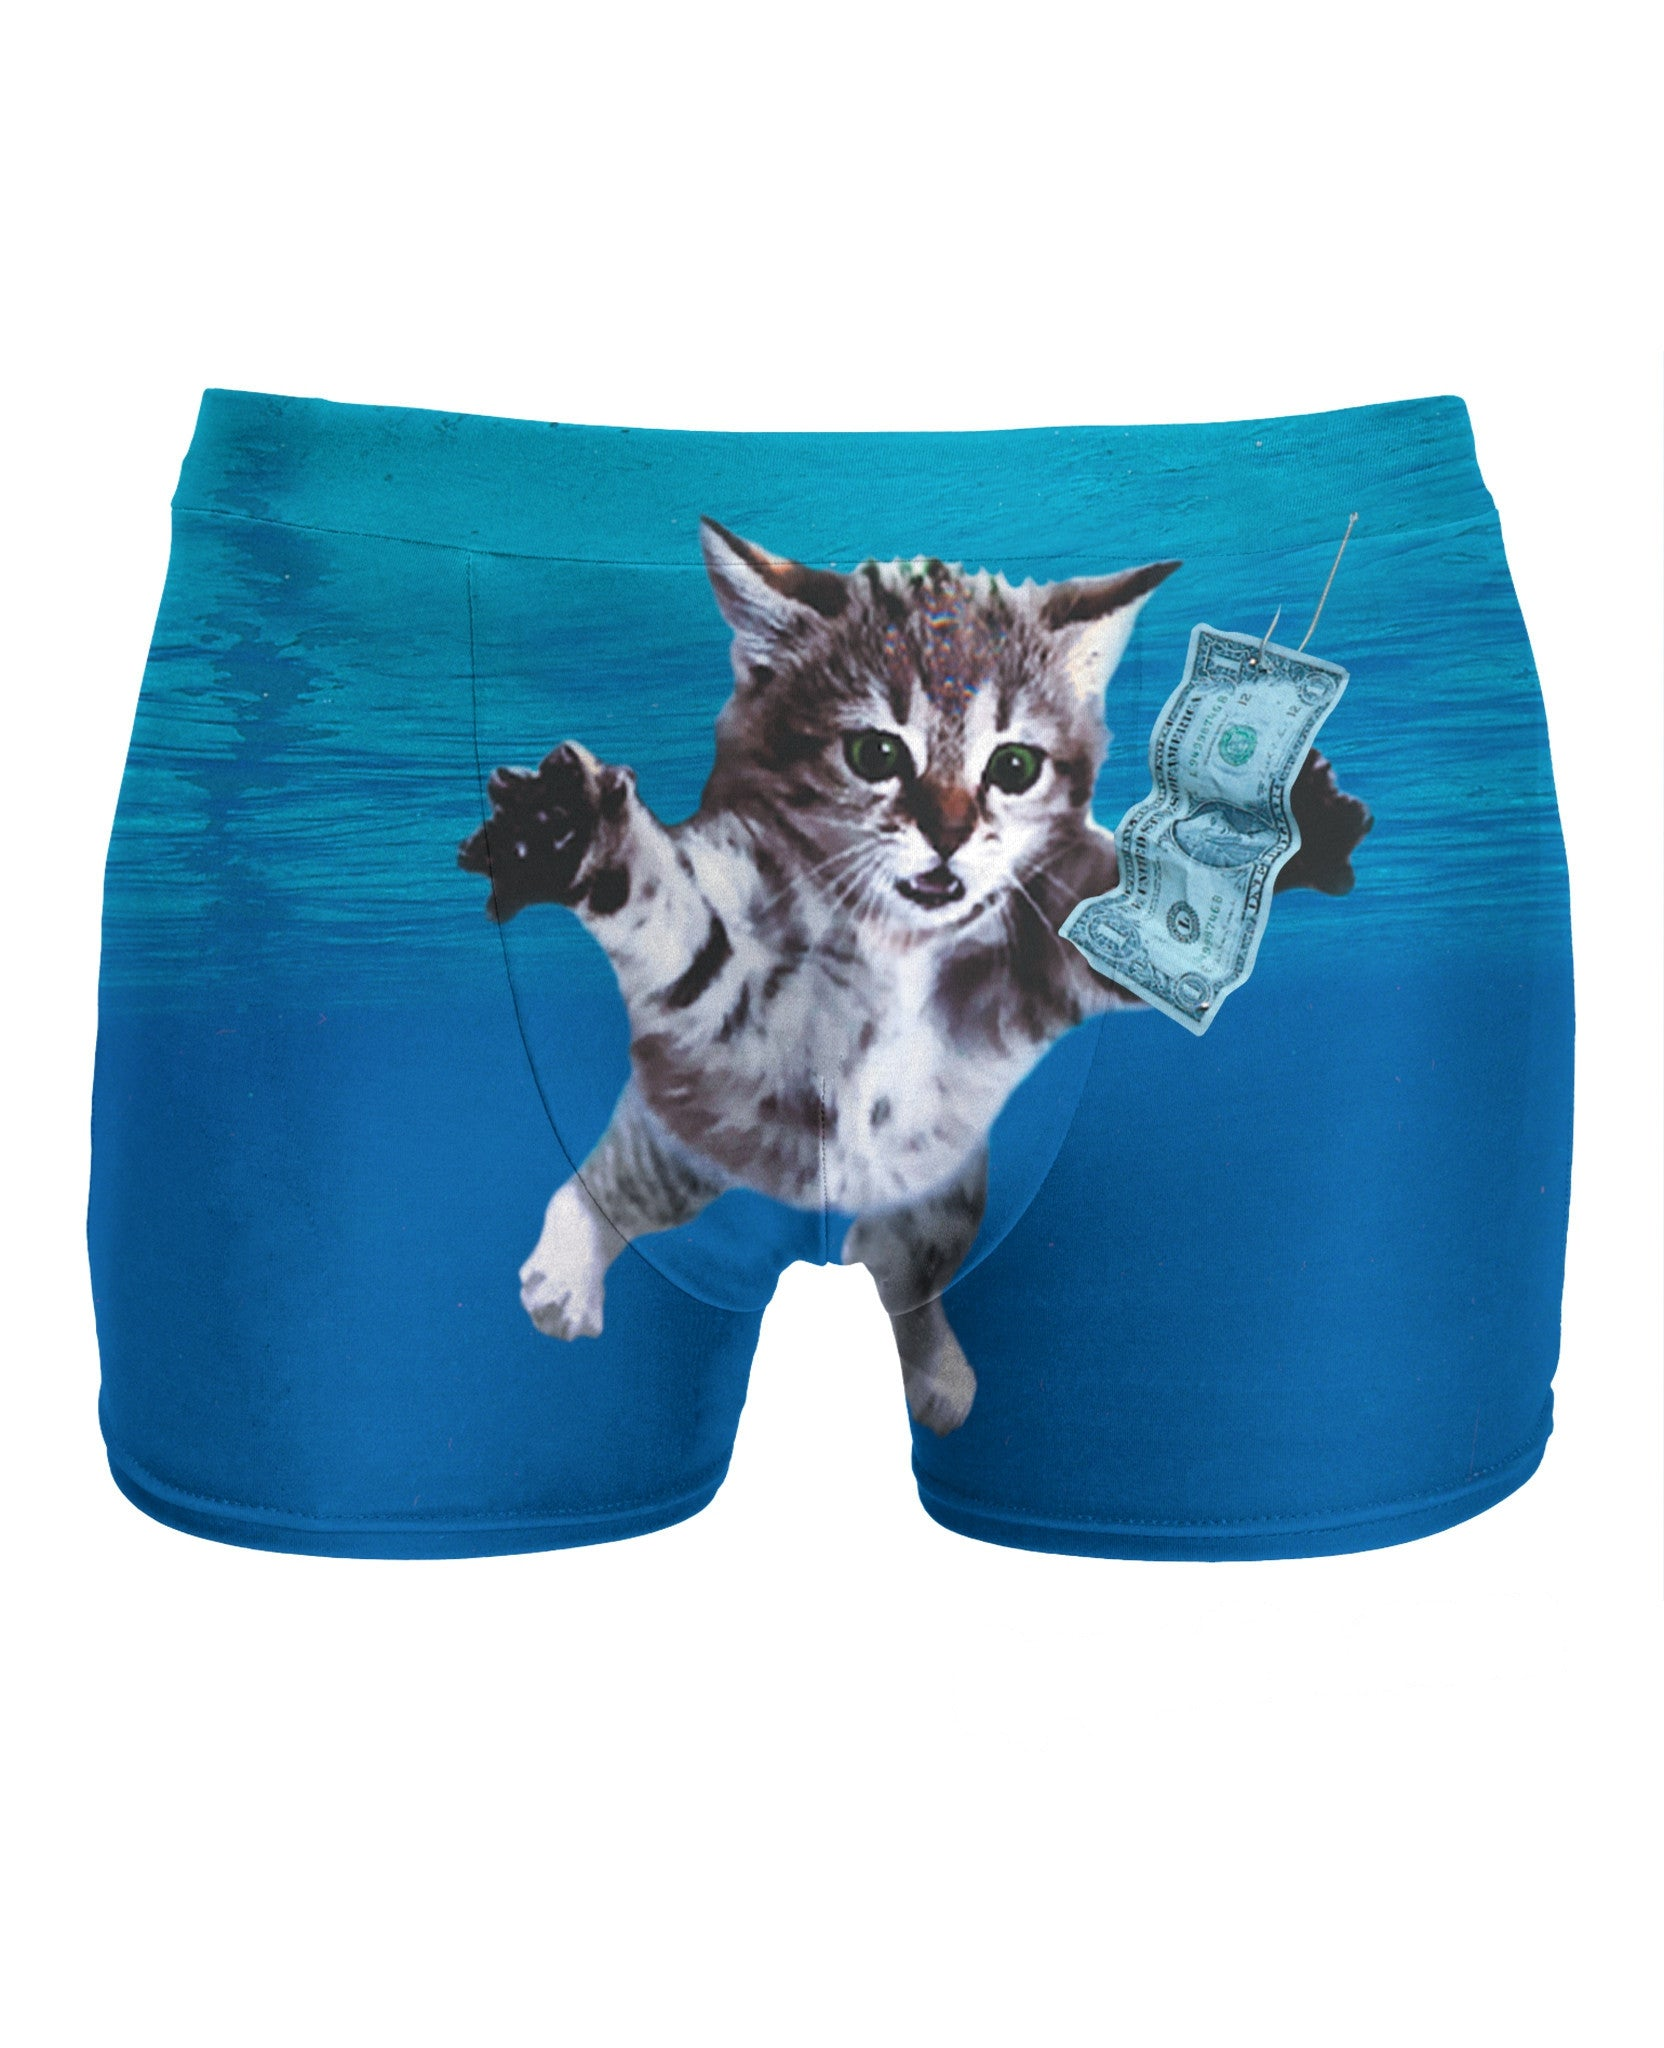 Cat Cobain Underwear - TShirtsRUS.co